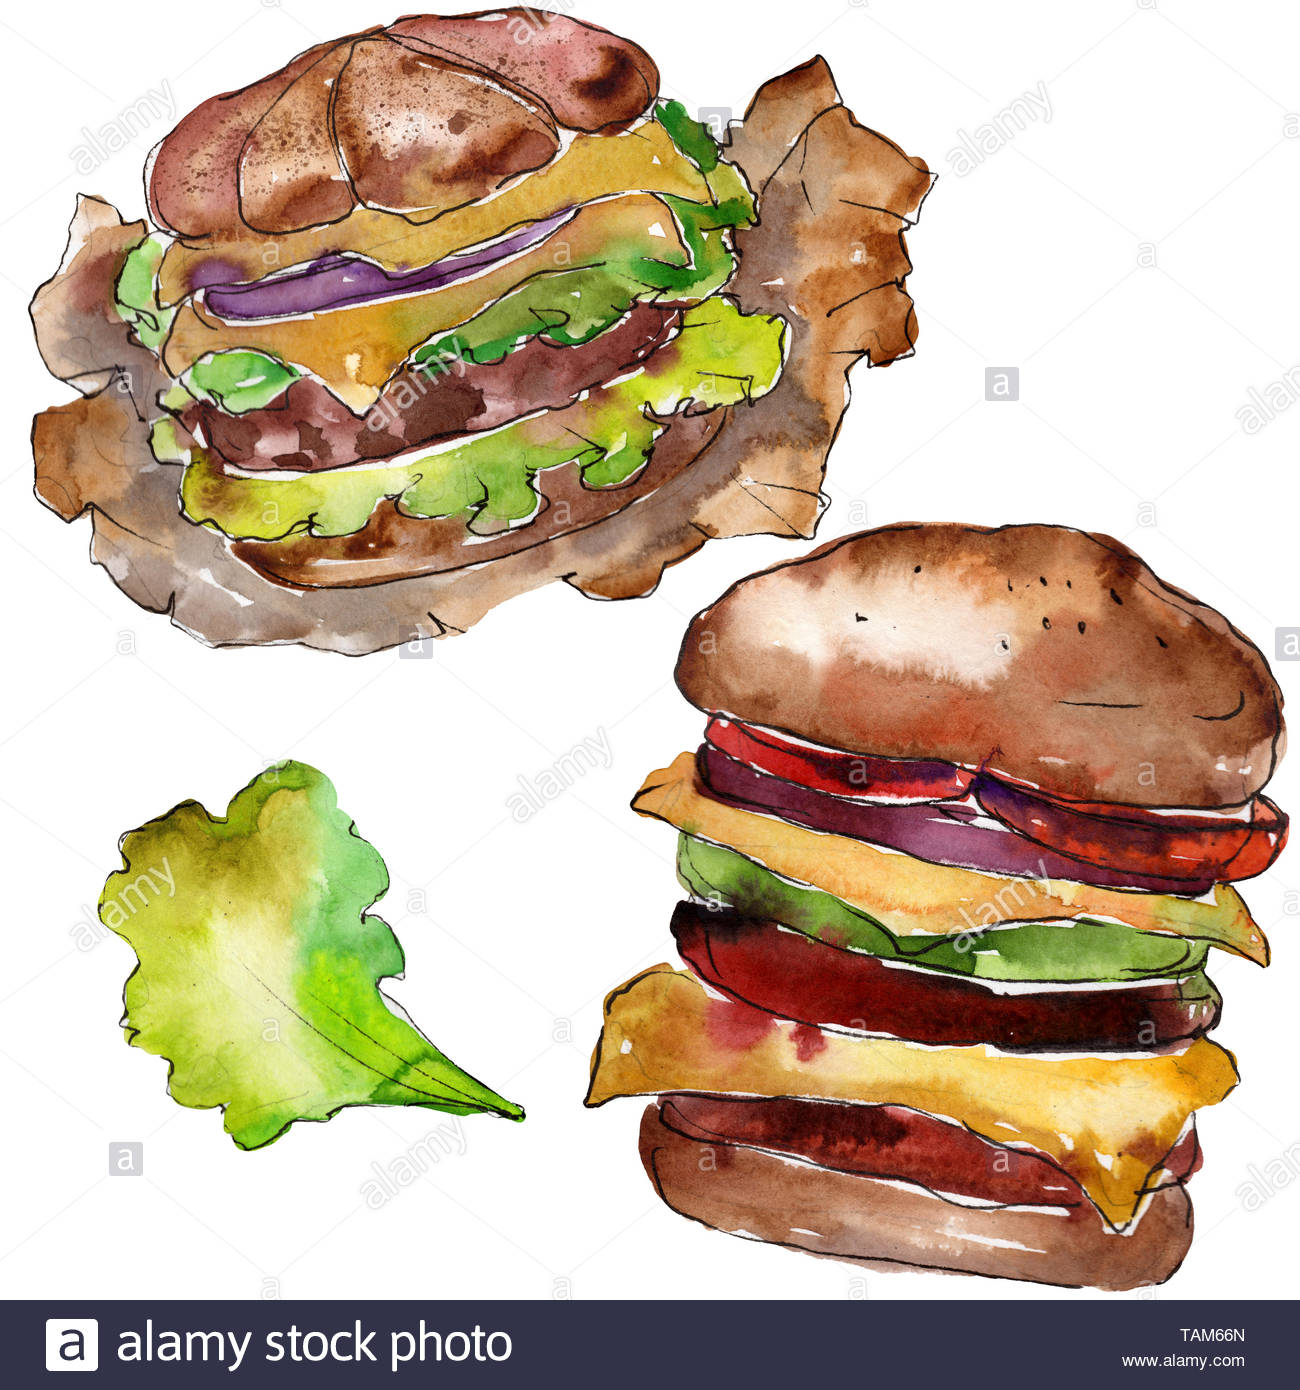 Fast Food Burger Sketch Stock Photos Fast Food Burger Sketch Stock